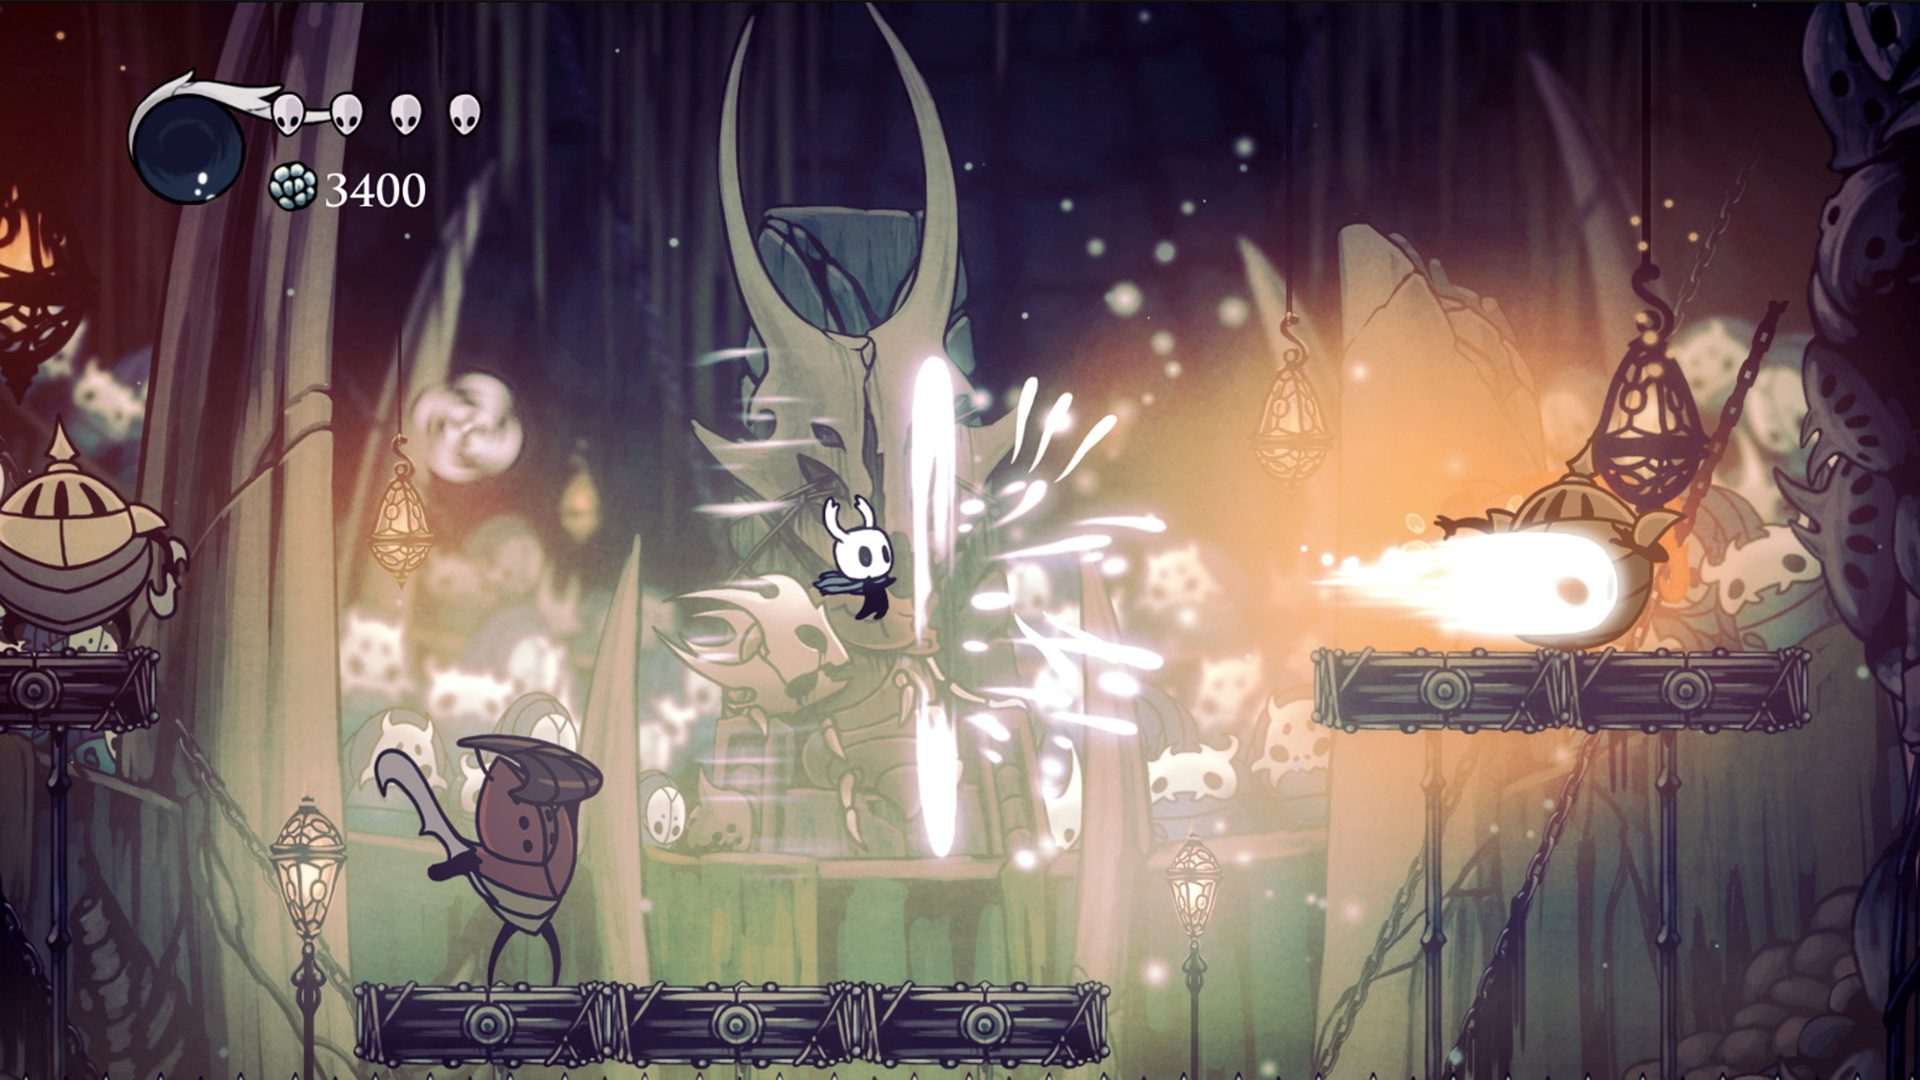 Find the best laptop for Hollow Knight